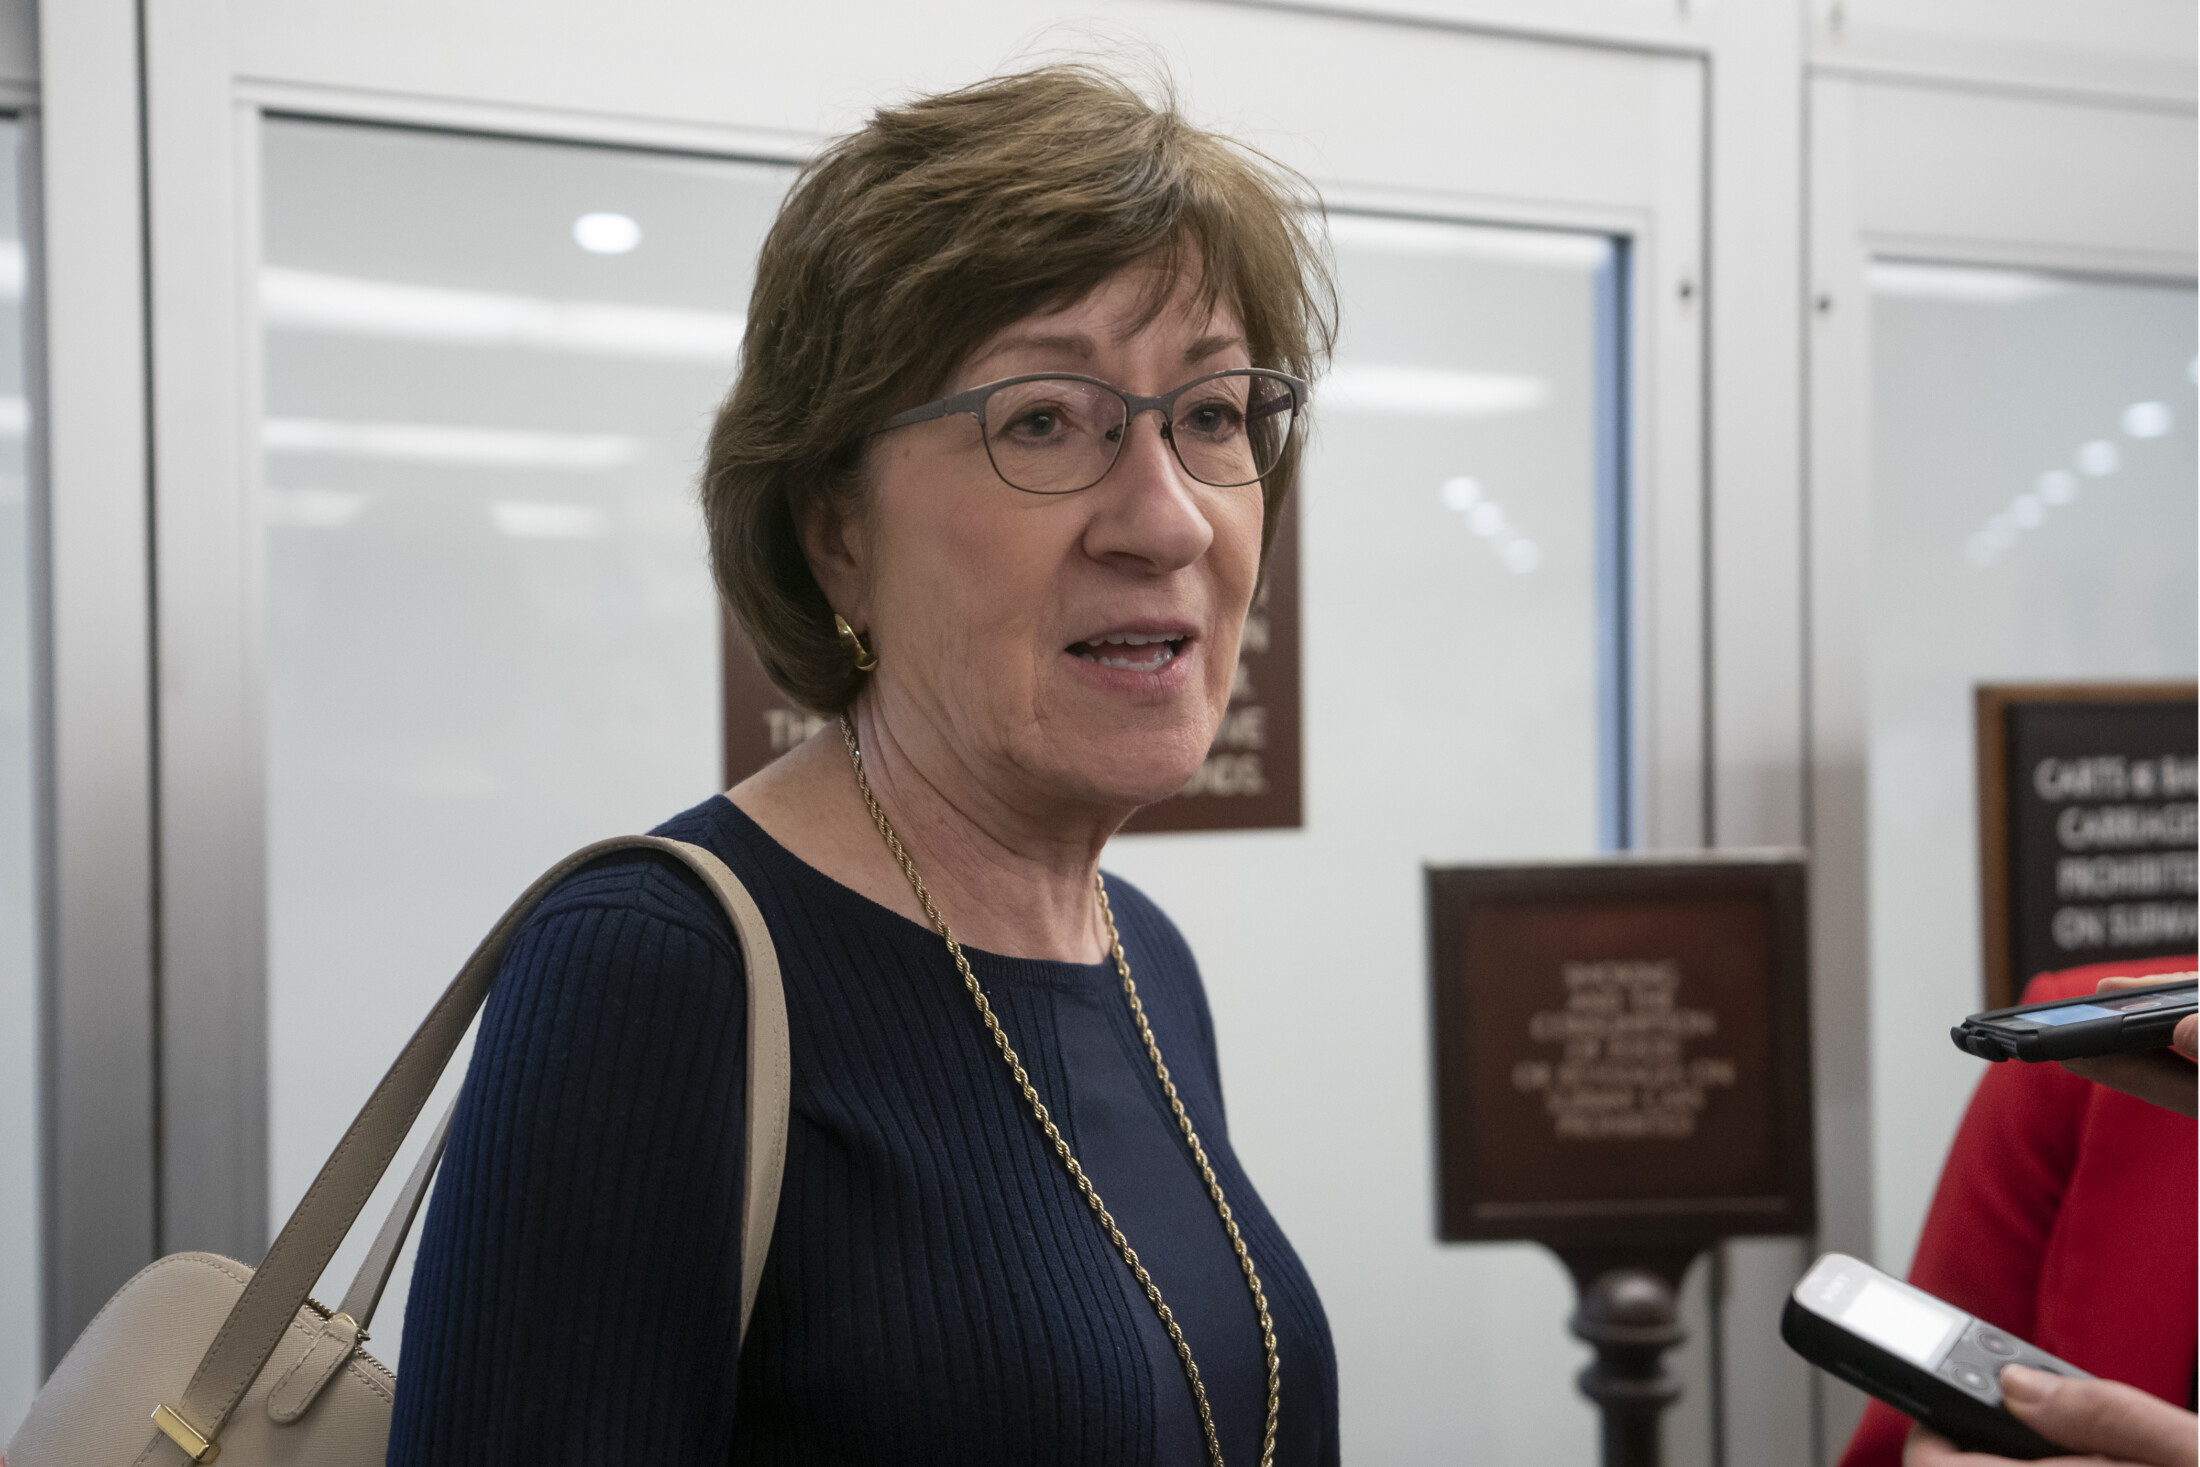 Collins joins bipartisan effort to end Trump's use of military funds for border wall - CentralMaine.com